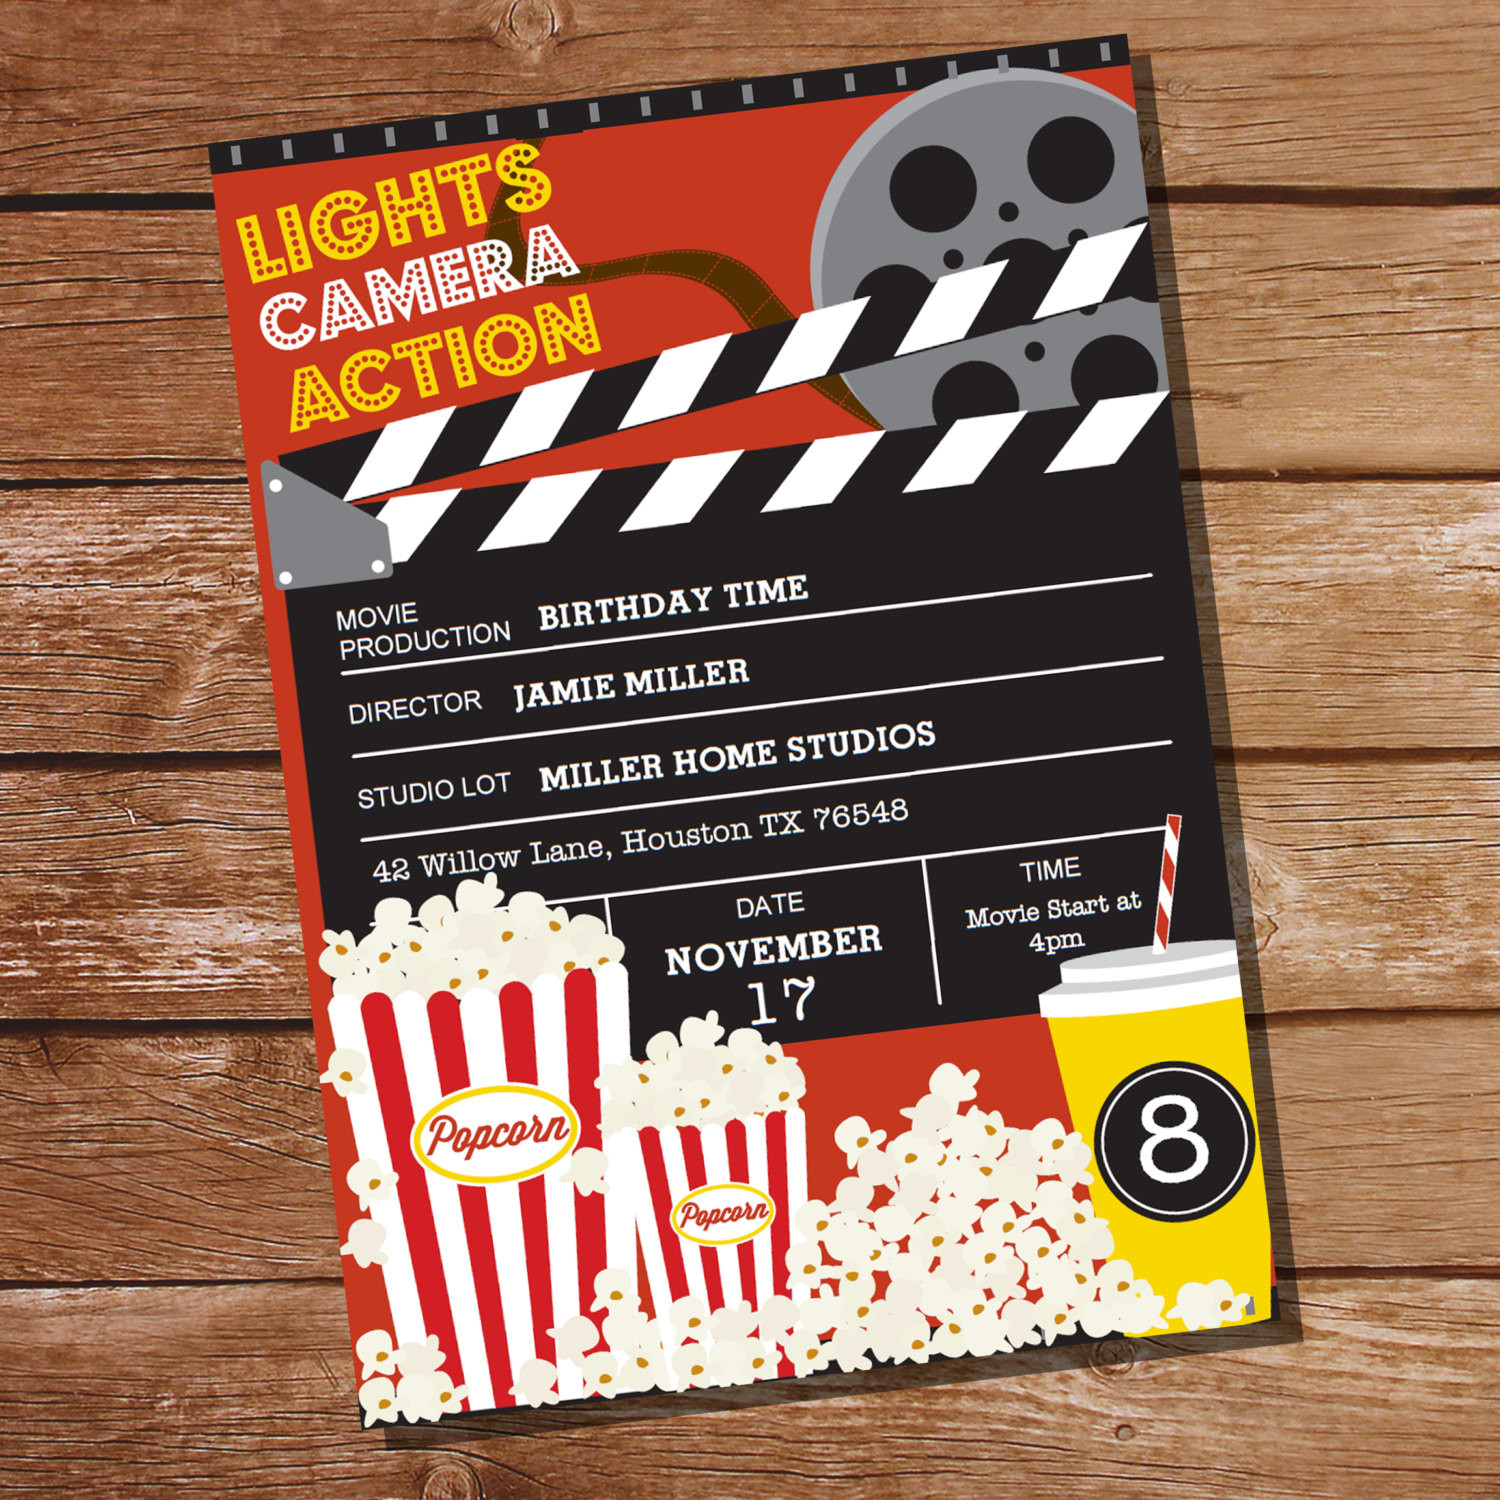 Best ideas about Movie Birthday Party Invitations . Save or Pin Movie Party Invitation Movie Ticket Invitation Instant Now.